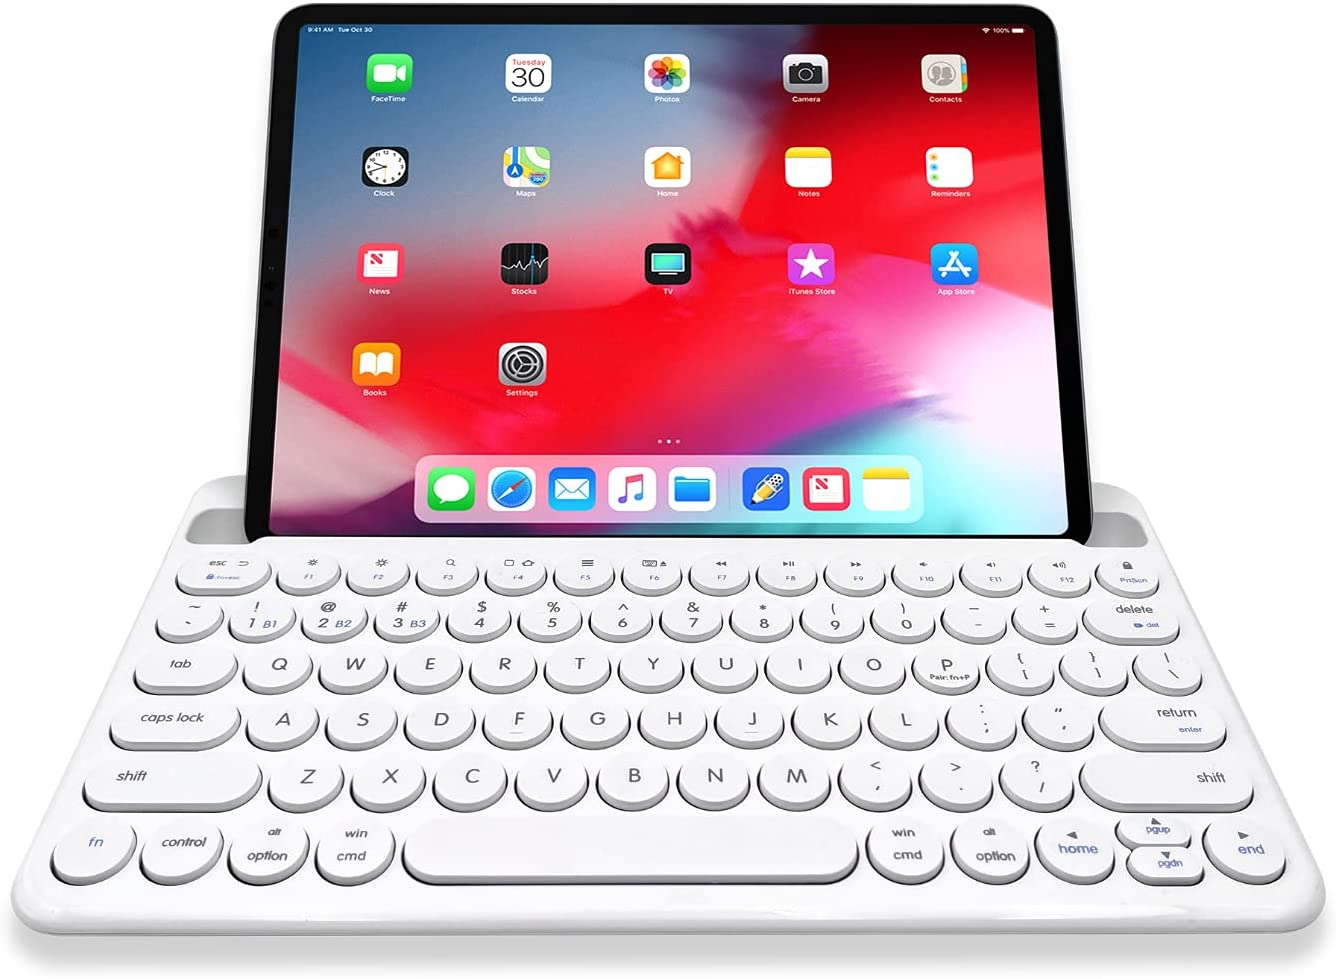 Macally Small Bluetooth Keyboard for Tablet and Phone - (Mac/PC/iOS/Android) Universal Multi Device - Rechargeable Bluetooth Wireless Keyboard with Stand - 78 Key Bluetooth iPad Keyboard Small - White